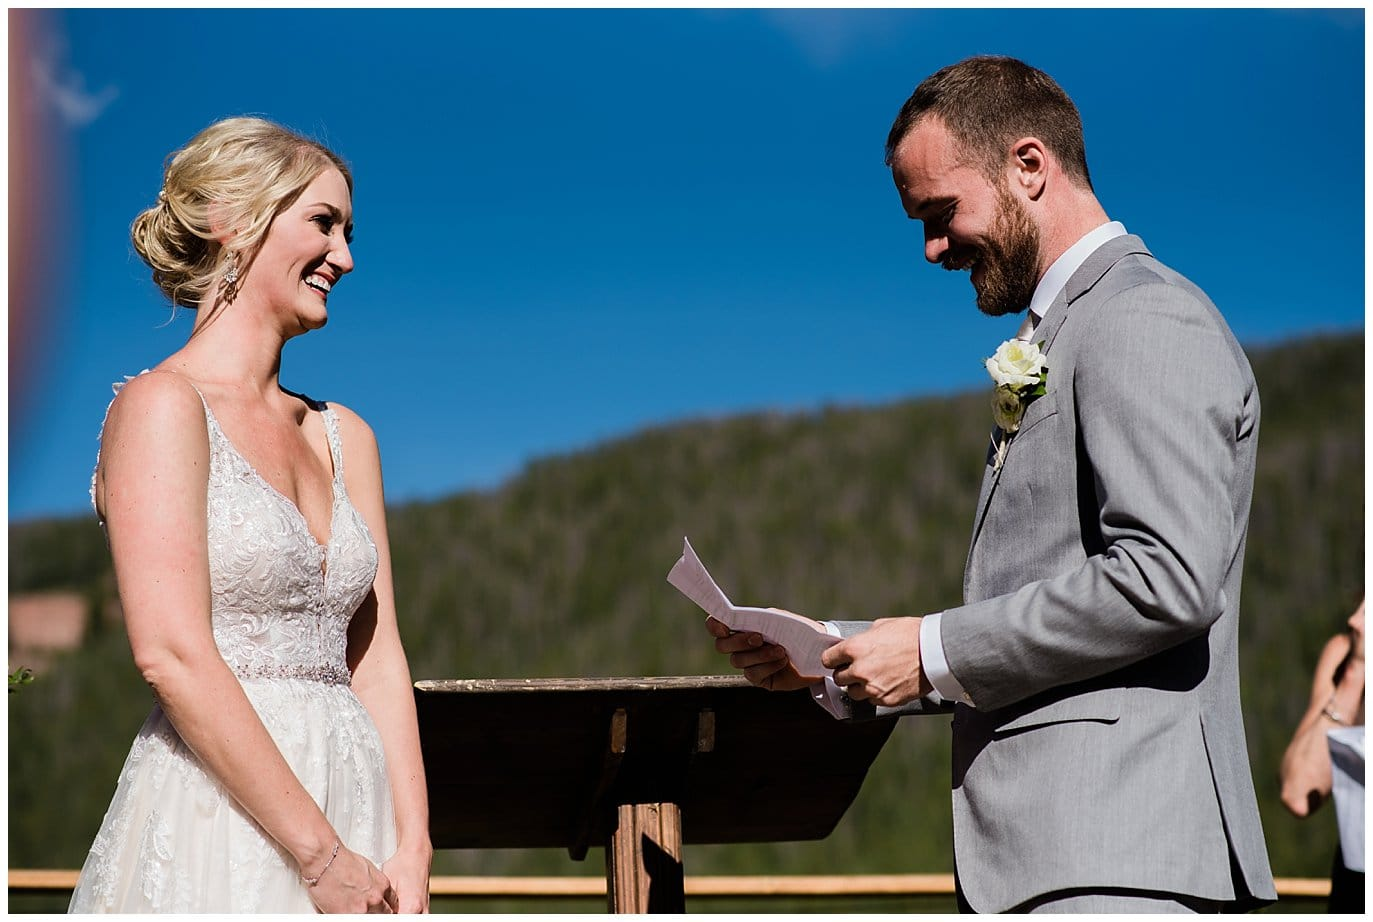 reading vows at intimate lakeside wedding at Piney River Ranch wedding by Beaver Creek wedding photographer Jennie Crate, Photographer